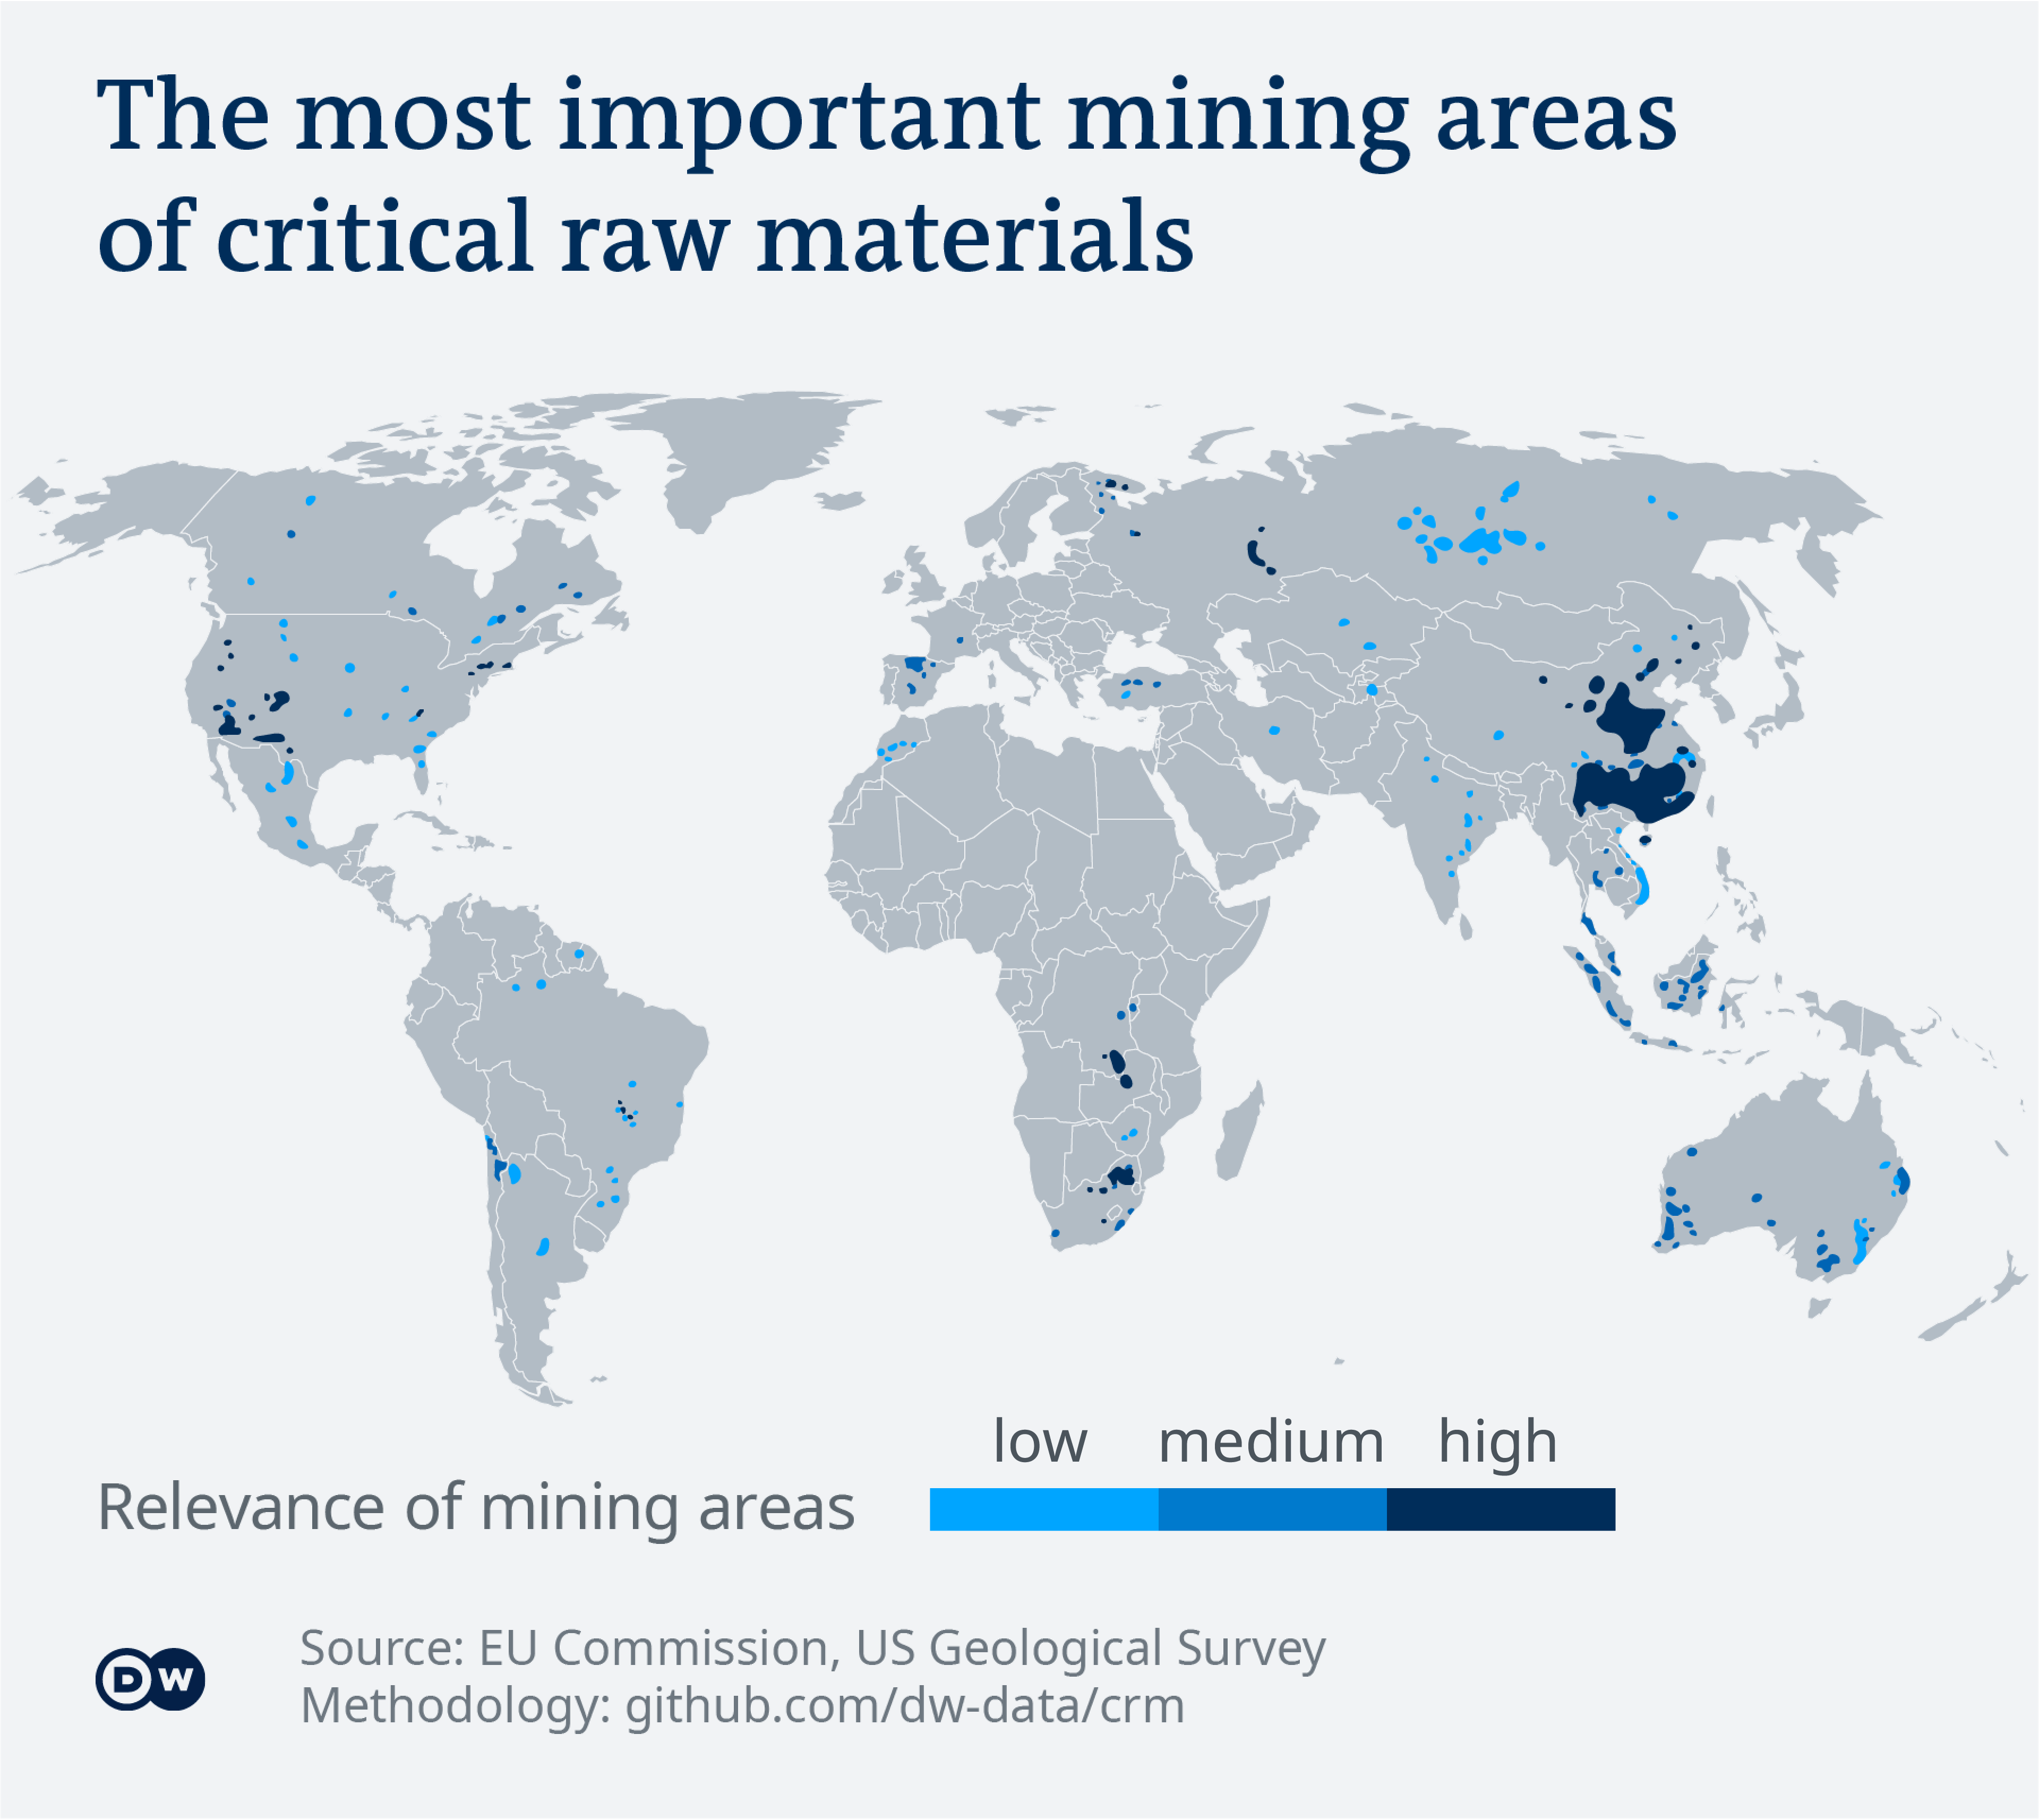 Data visualization: The most important mining areas of critical raw materials